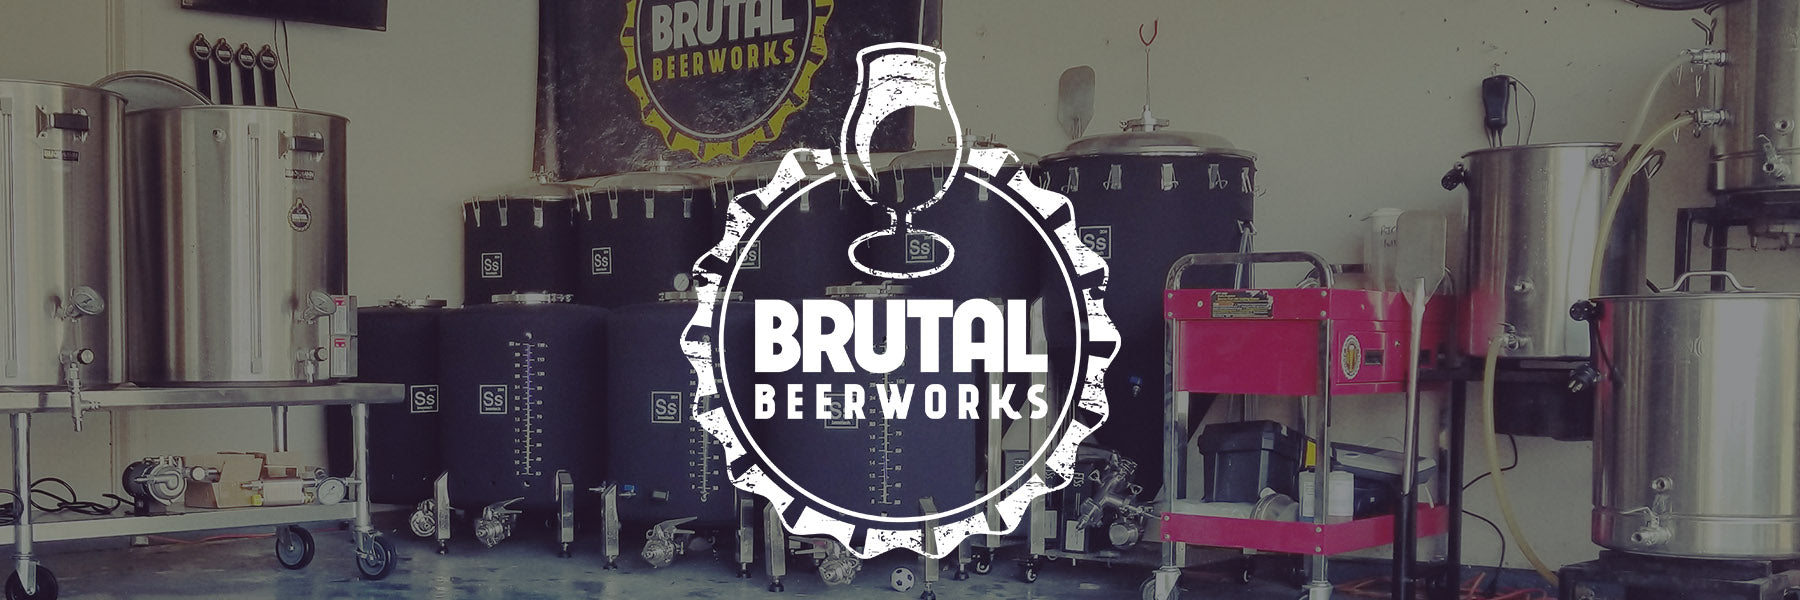 Brutal Beerworks | North Richland Hills, Texas